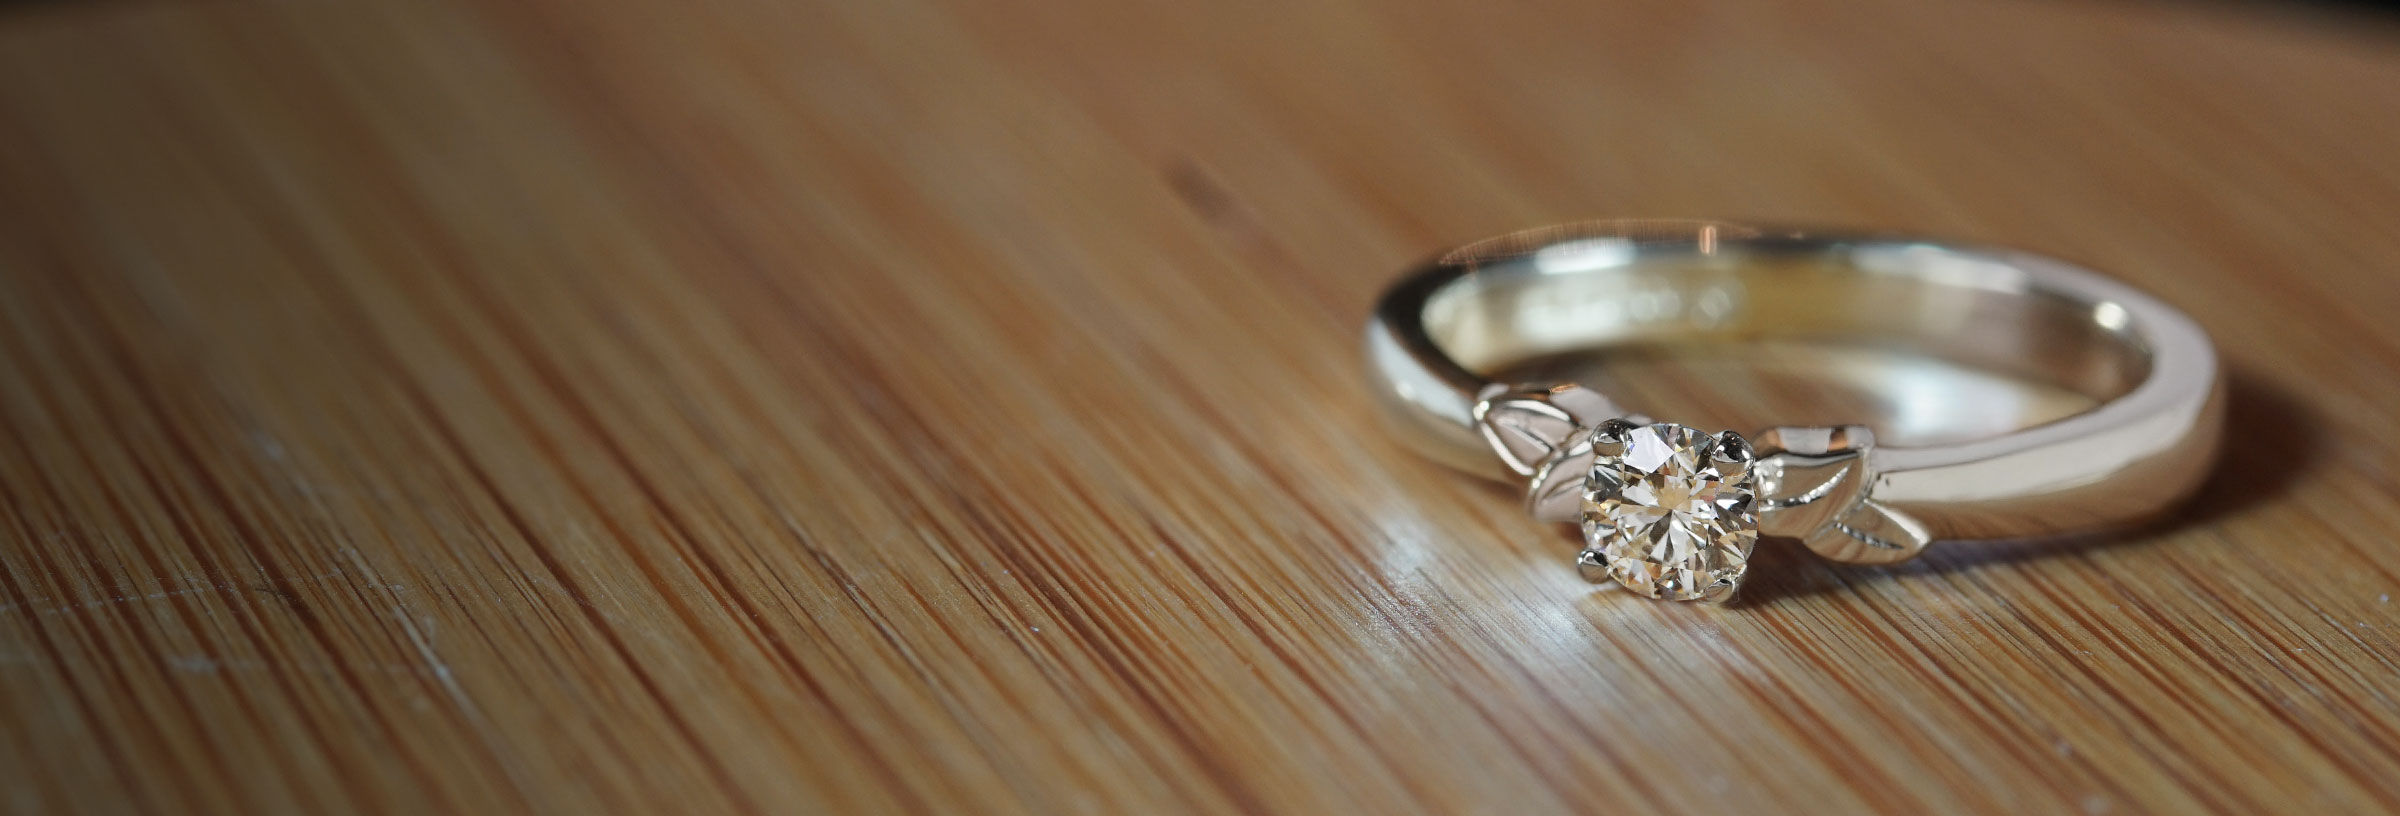 white-gold-delicate-leaf-design-solitaire-diamond-engagement-ring